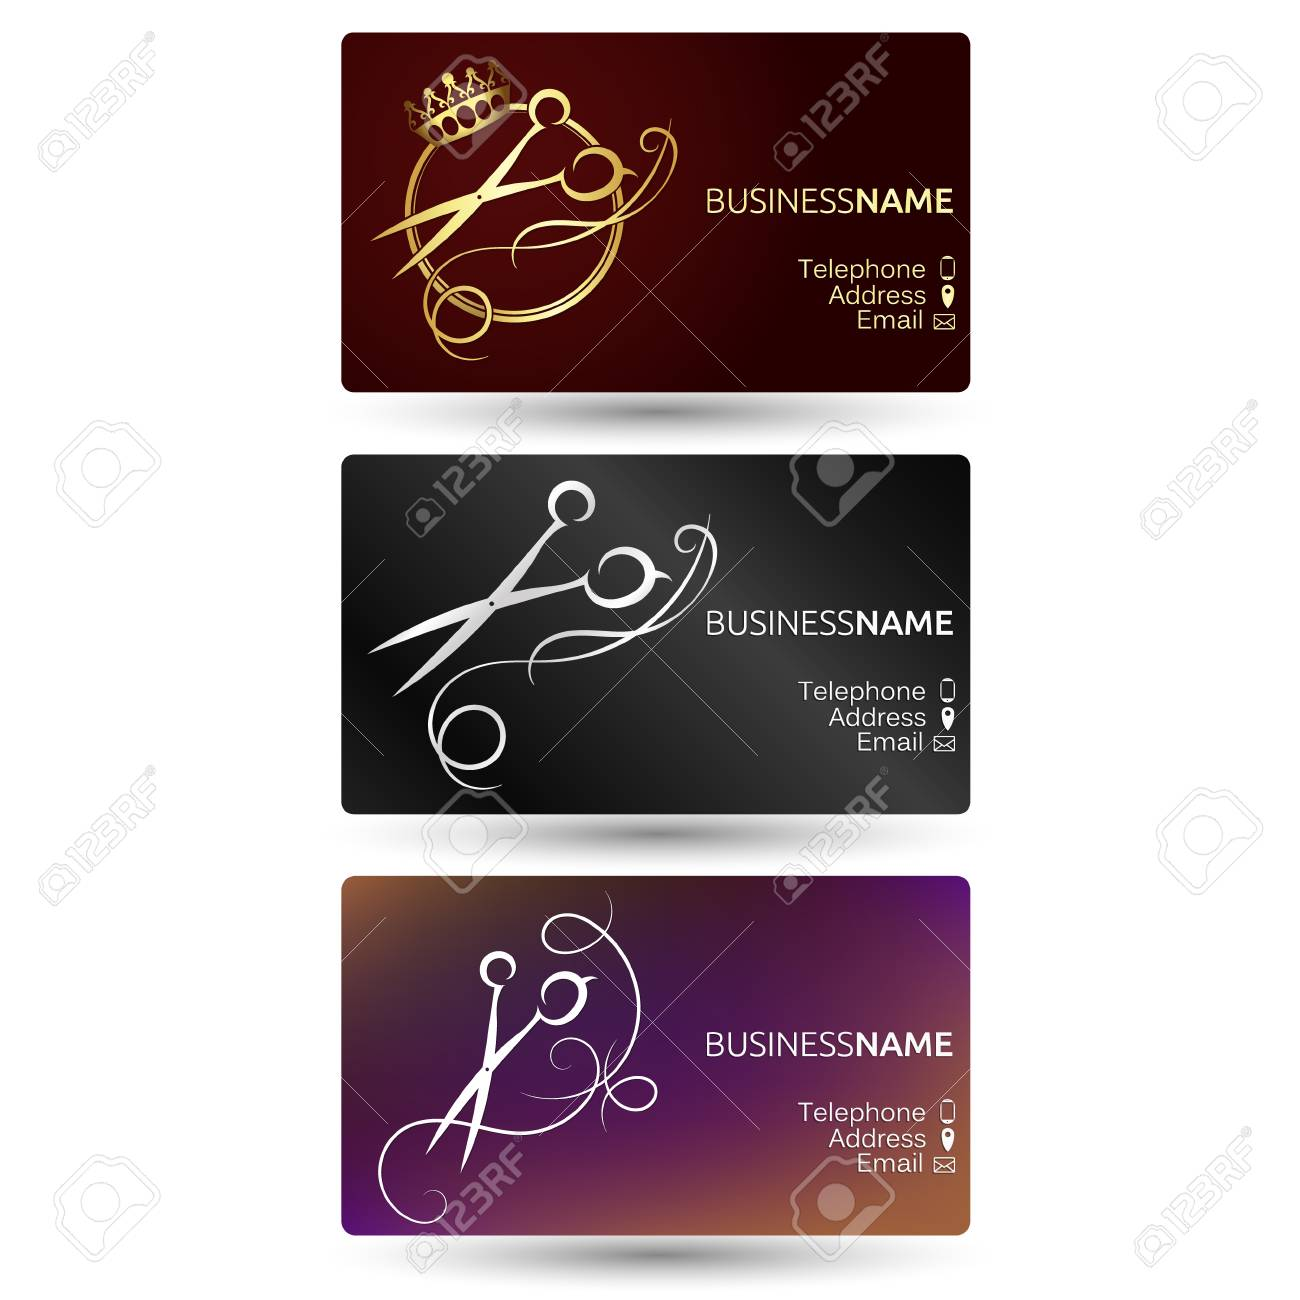 Business card for hairdresser and beauty salon set for business business card for hairdresser and beauty salon set for business stock vector 73938451 reheart Choice Image